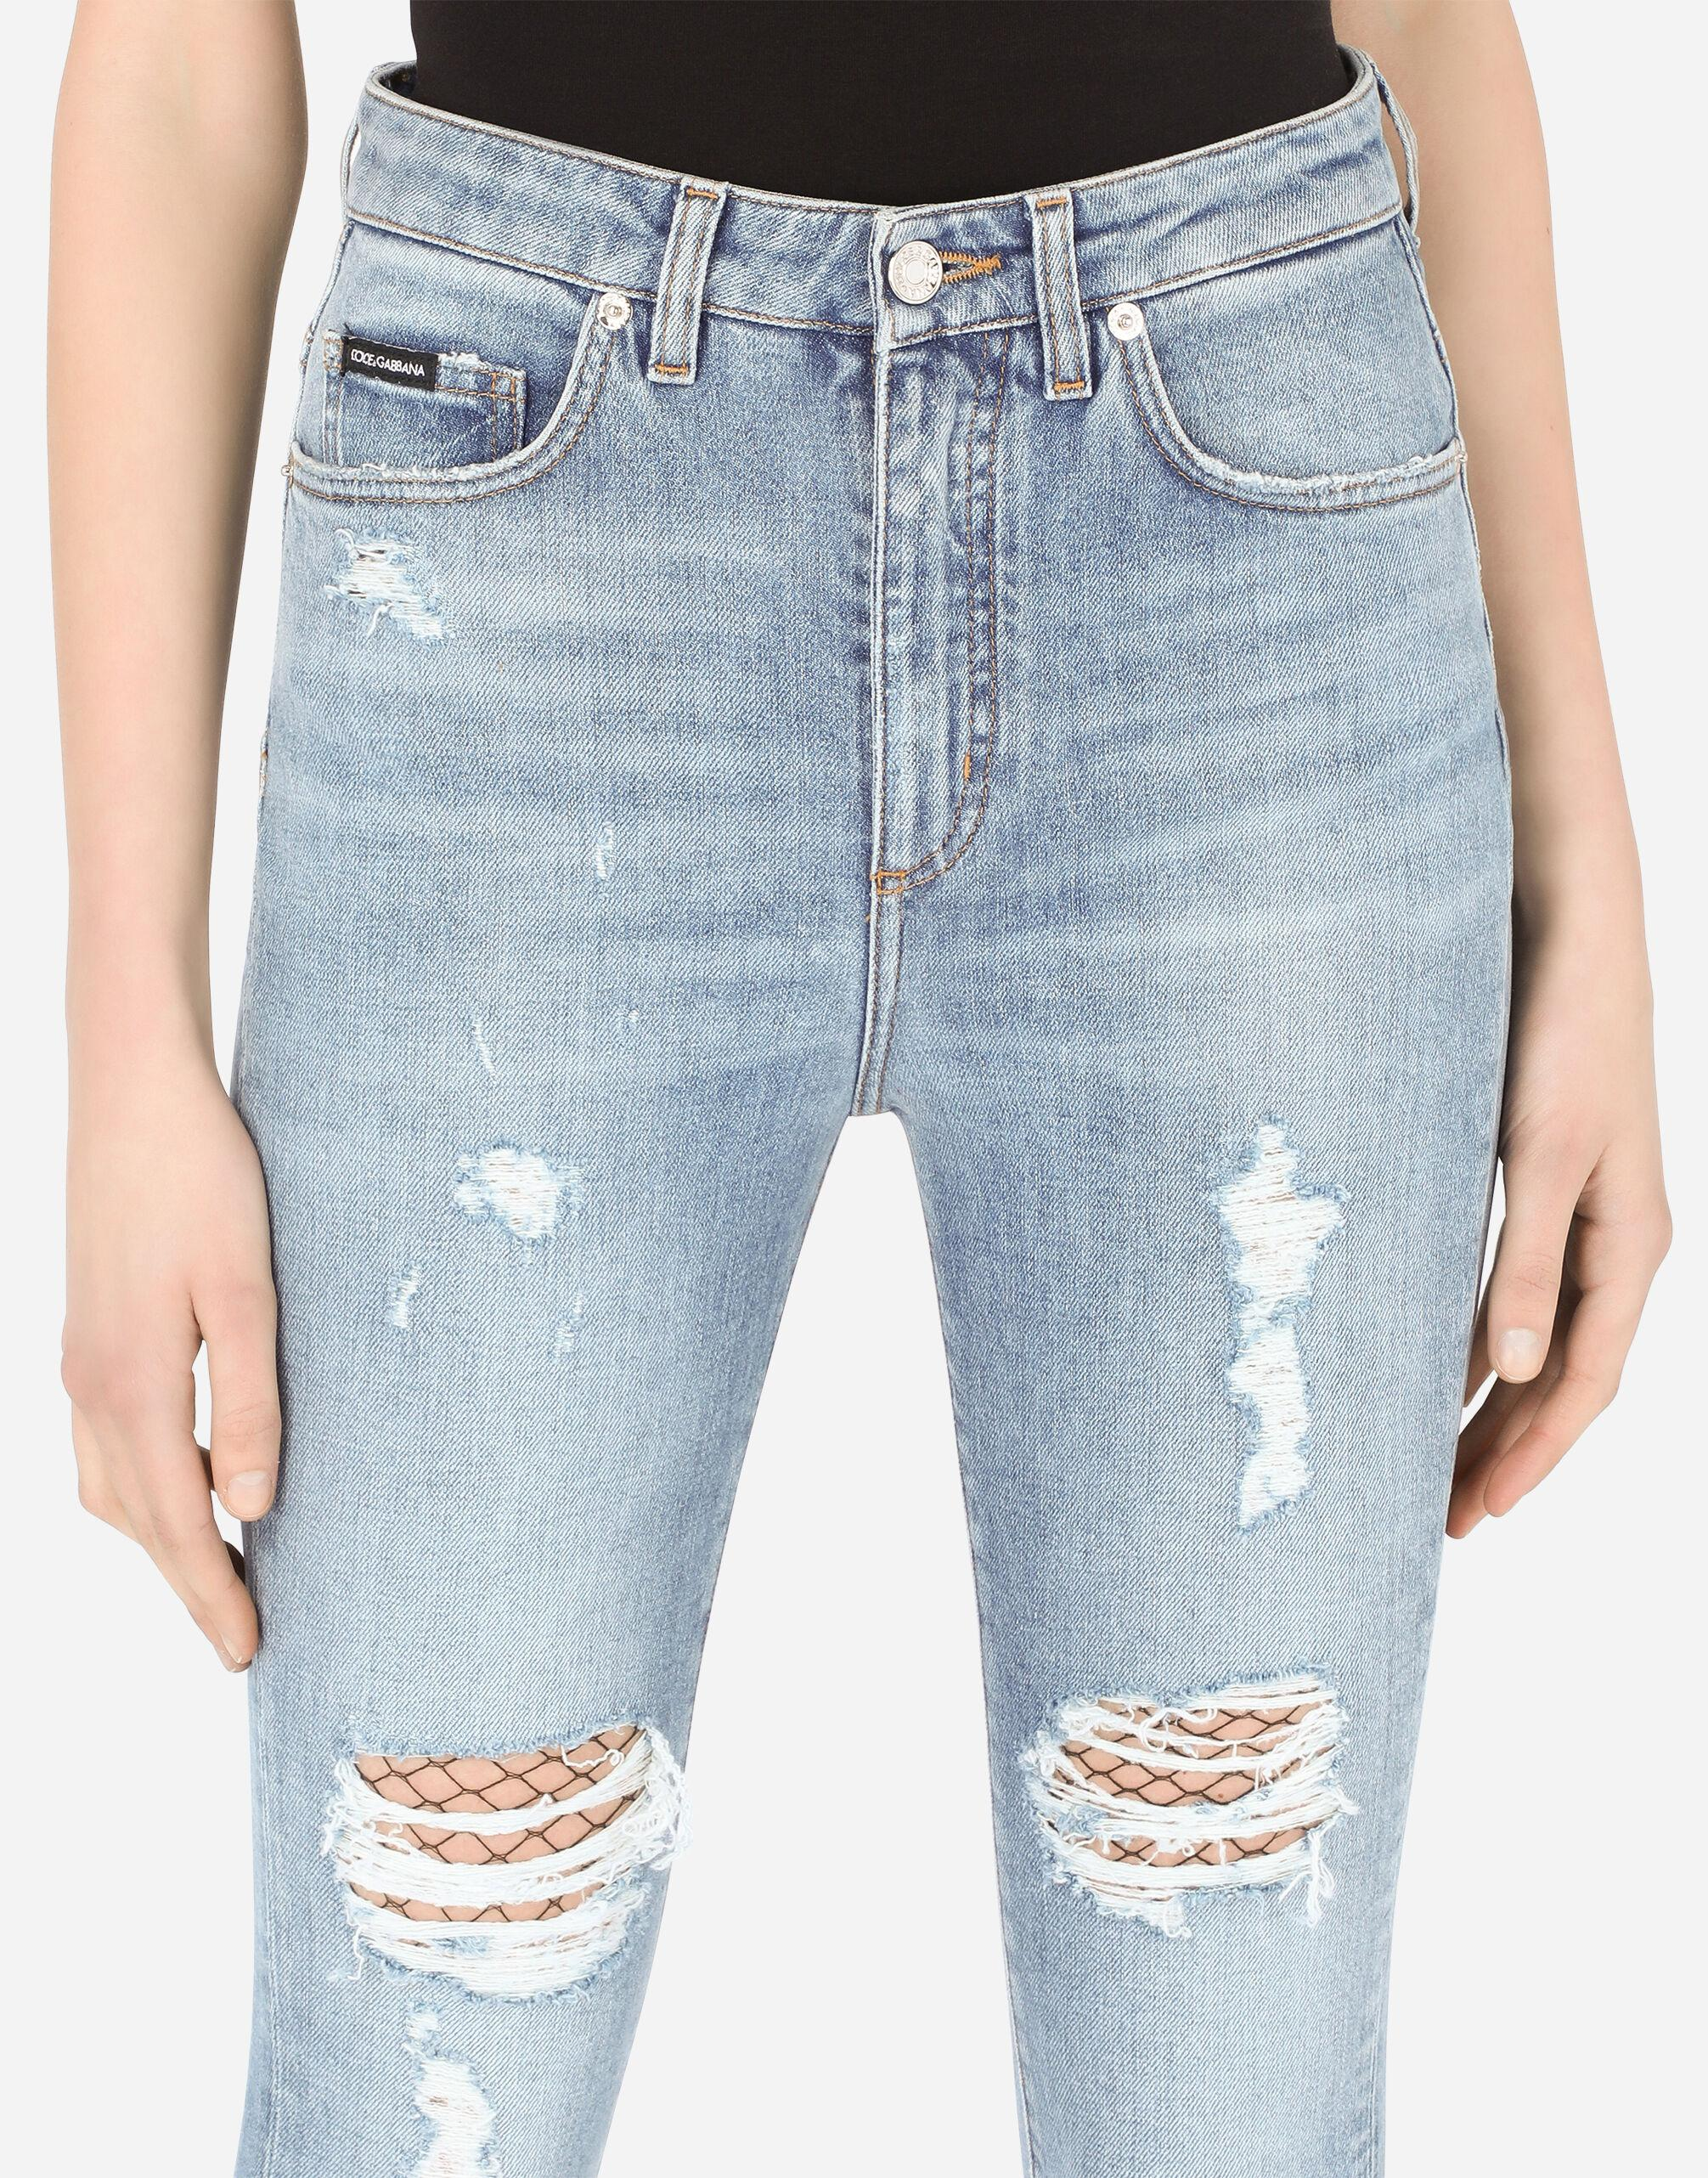 Stretch denim Audrey jeans with rips 3